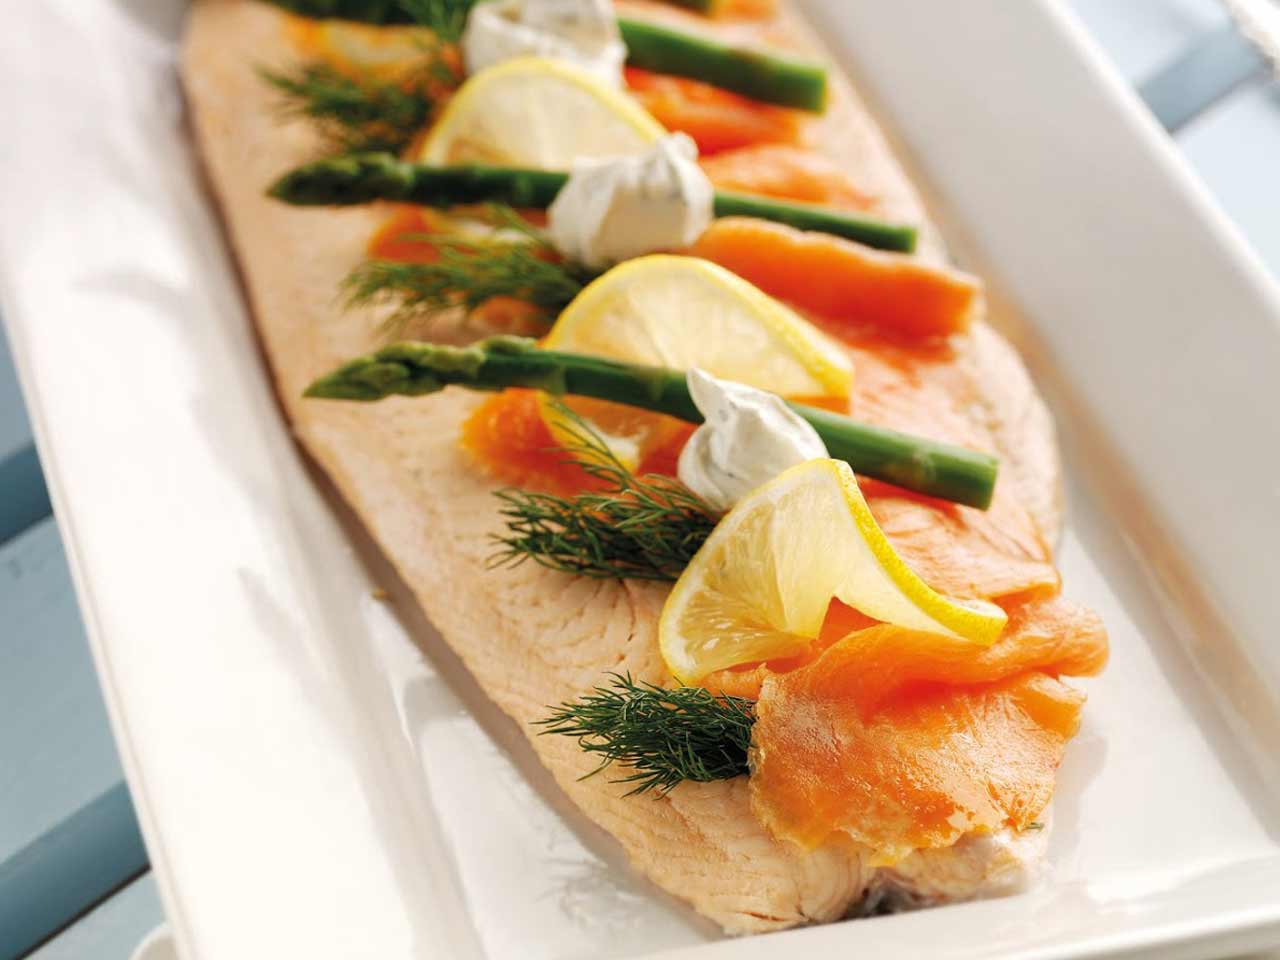 Discussion on this topic: Poached Salmon PLUS, poached-salmon-plus/